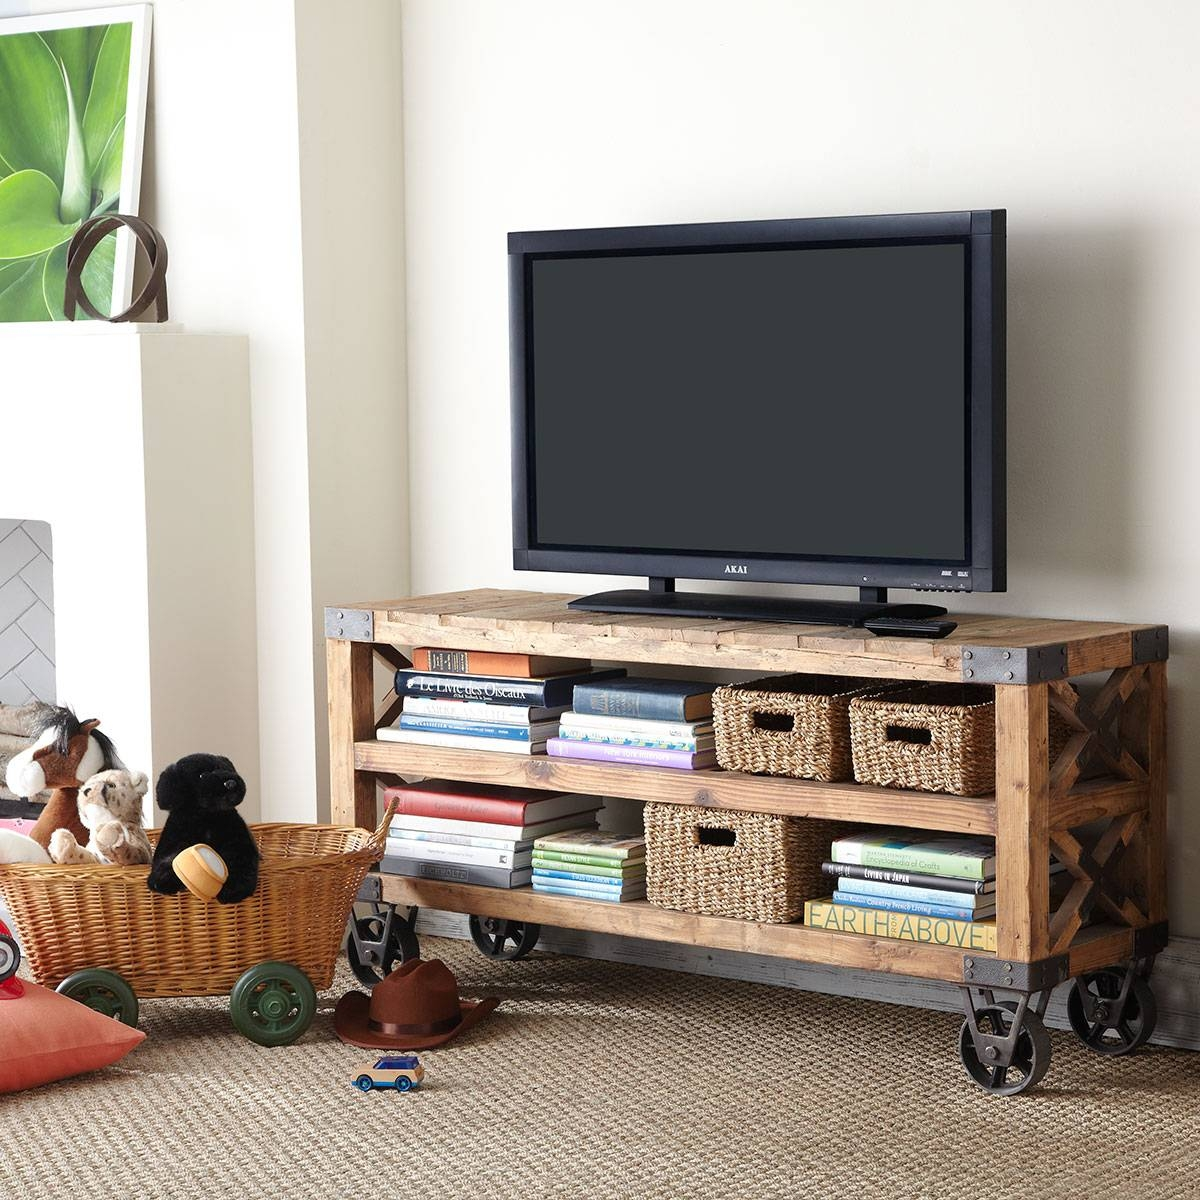 Cool Homemade Industrial Tv Stands With Wheels Made From Reclaimed Intended For Tv Stands And Bookshelf (View 13 of 15)